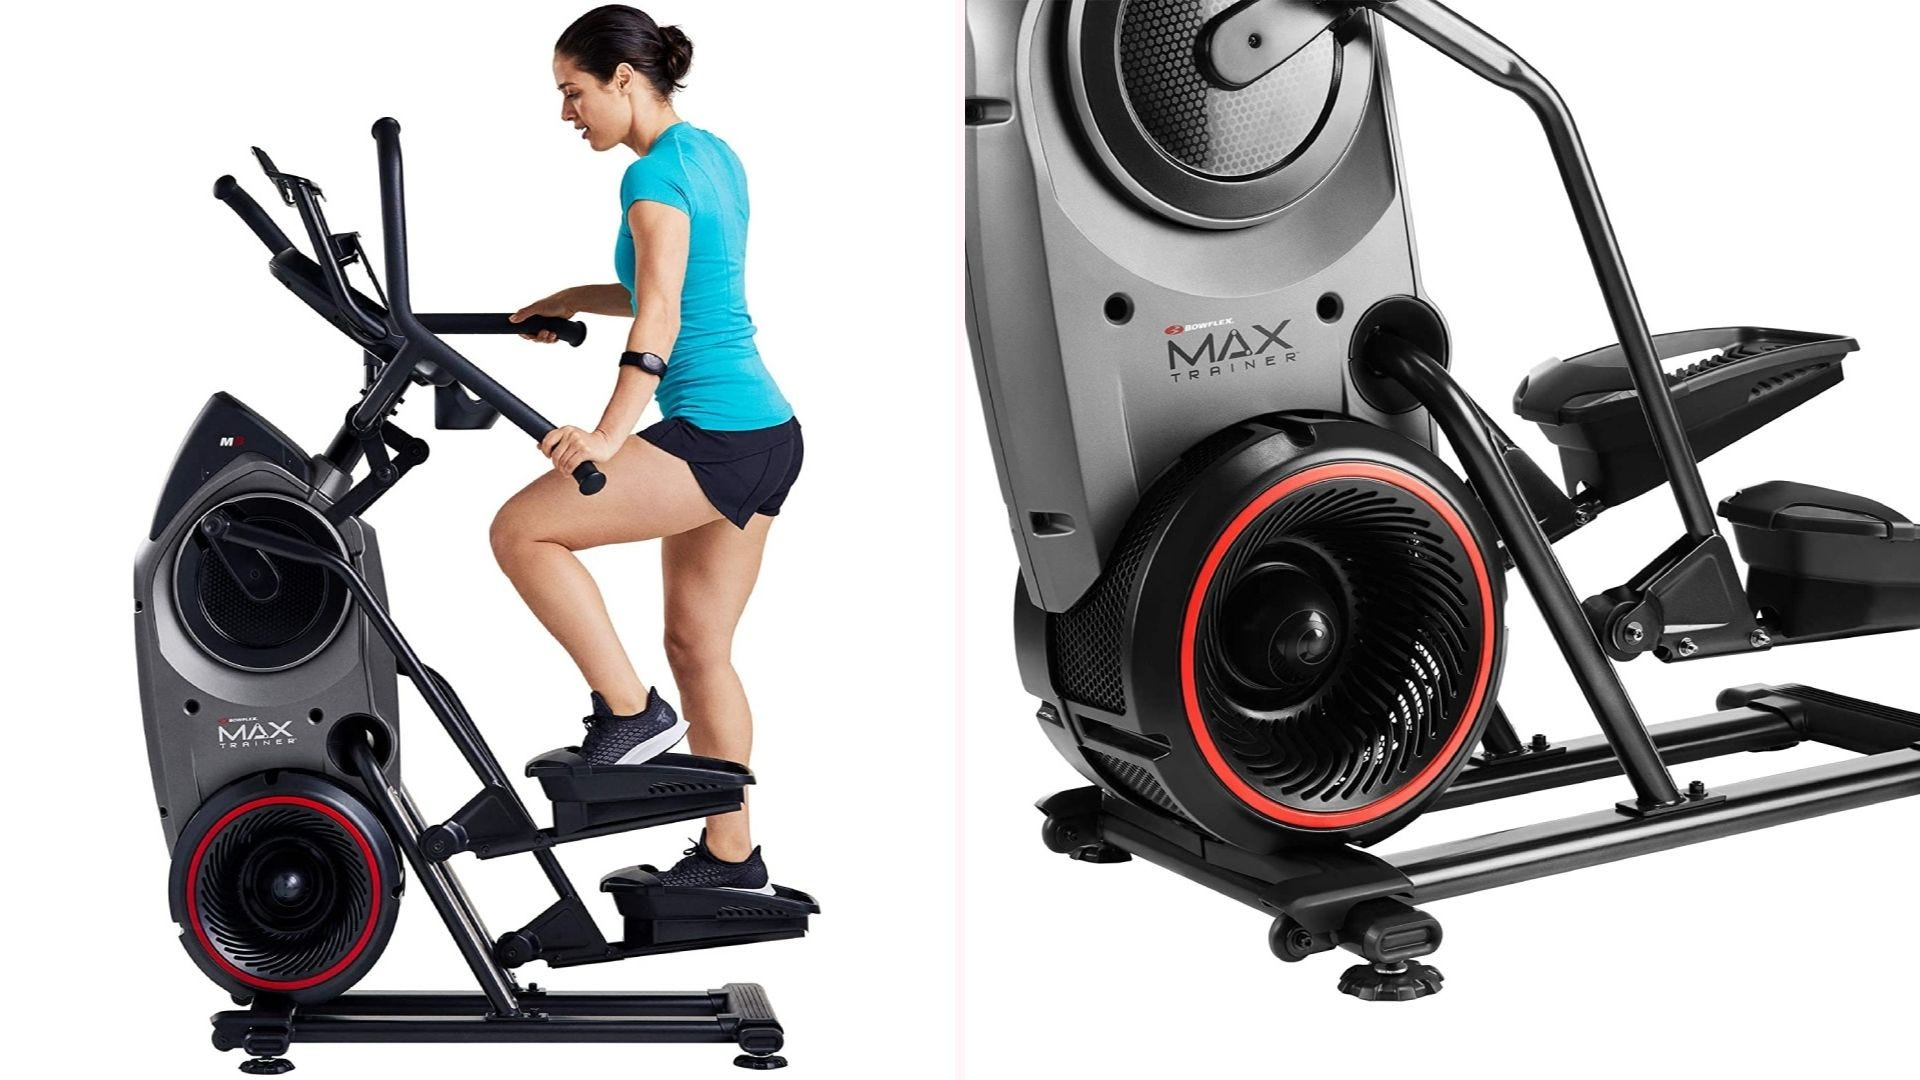 On the left, a woman holds on to handles as she steps on a stair stepper machine. On the right, a close-up of the machines base that features a fan-like design and wide pedals.